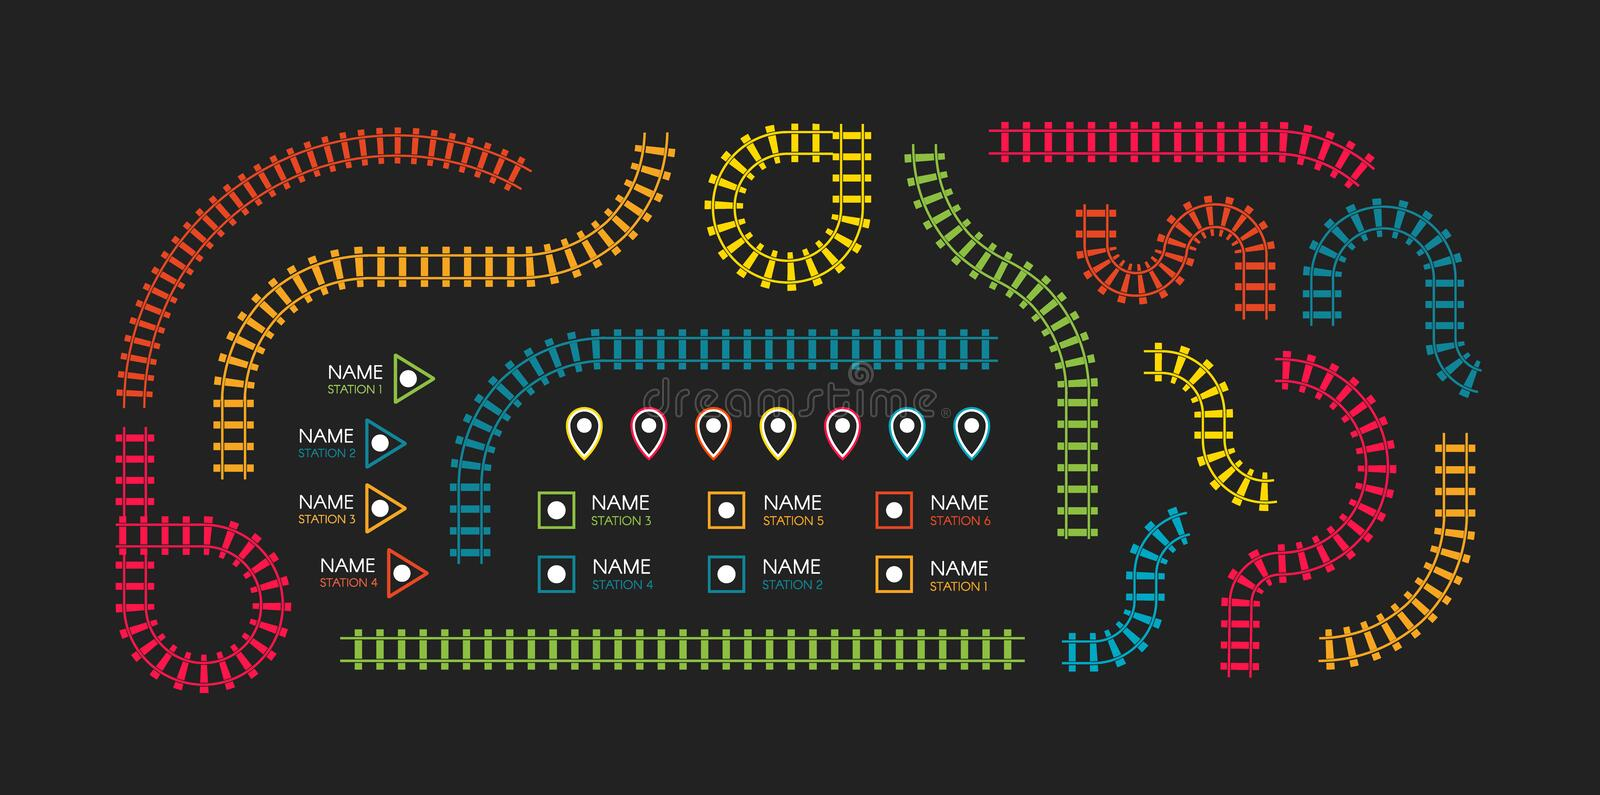 Railroad tracks, subway stations map top view, infographic elements. Railway simple icon set, rail track direction. Train tracks colorful vector illustrations vector illustration